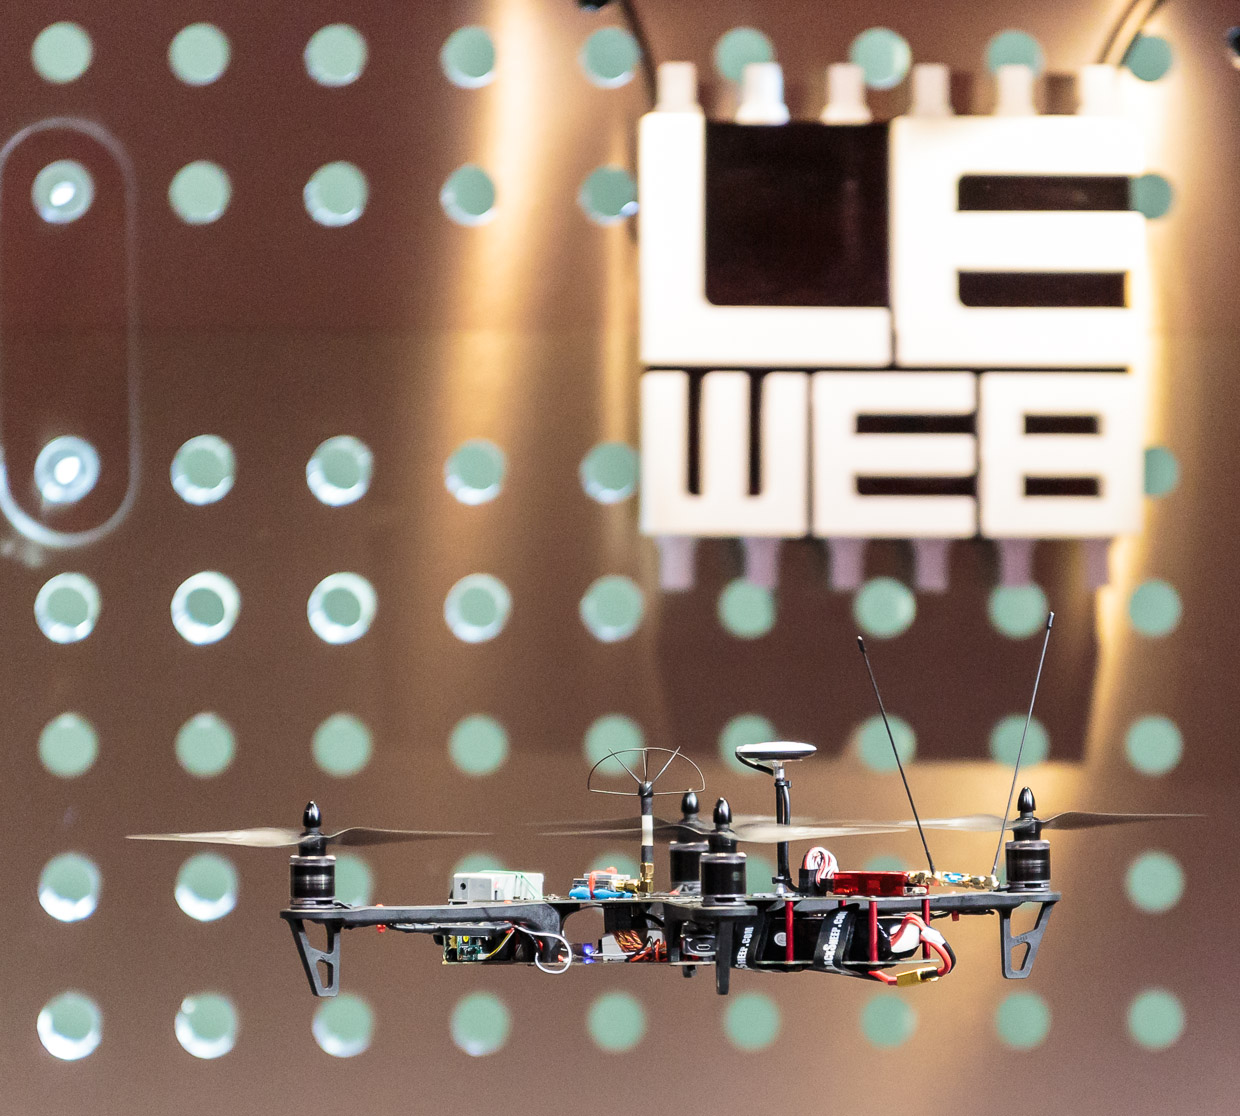 Team BlackSheep's TBS Discovery quadcopter at LeWeb 2012.